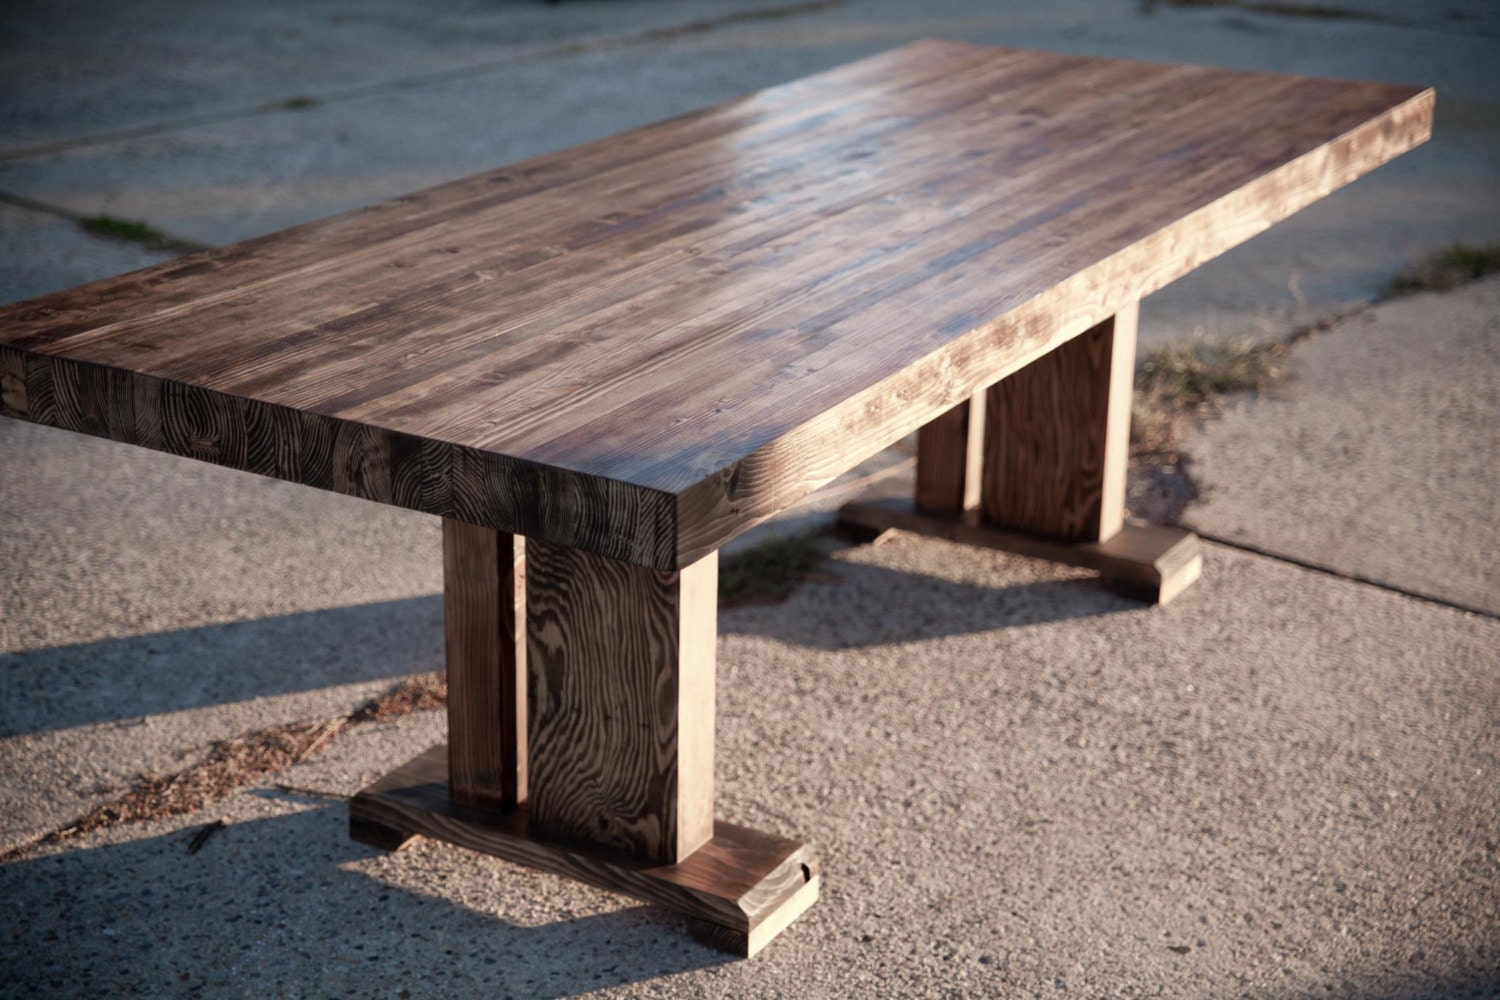 8ft Butcher Block Table For Dinning By EmmorWorks On Etsy